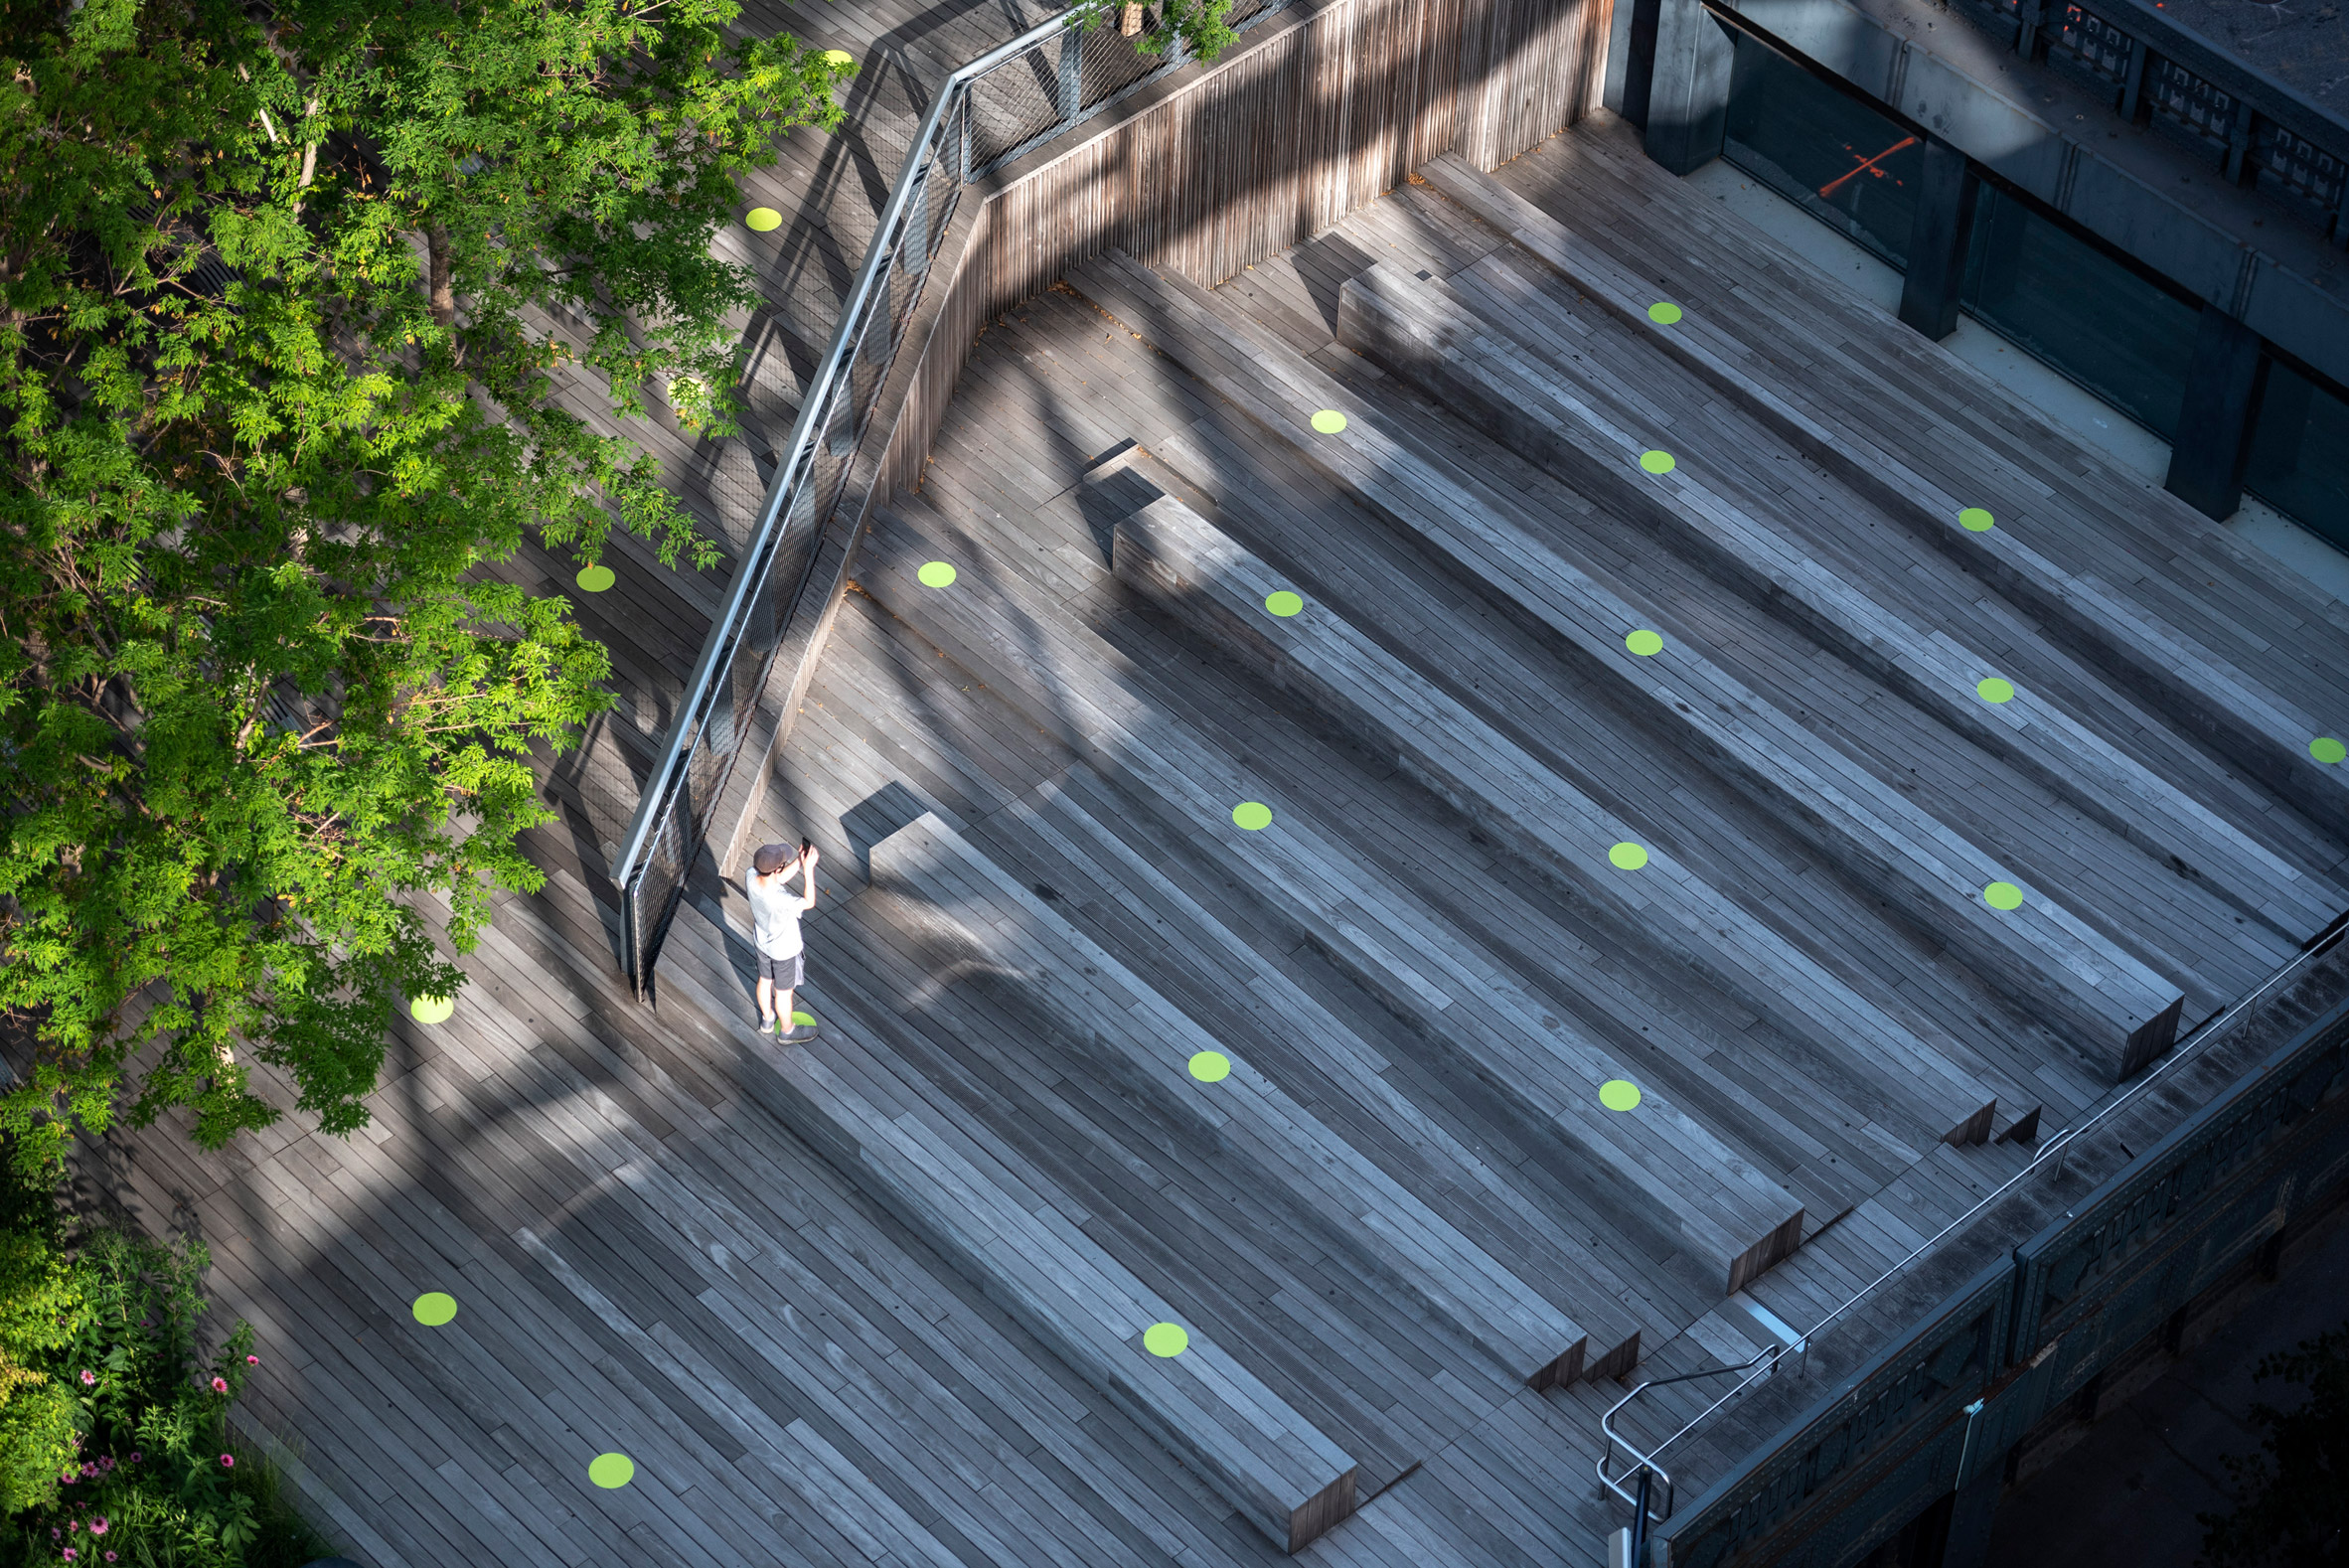 Paula Scher covers High Line in green dots to encourage social distancing